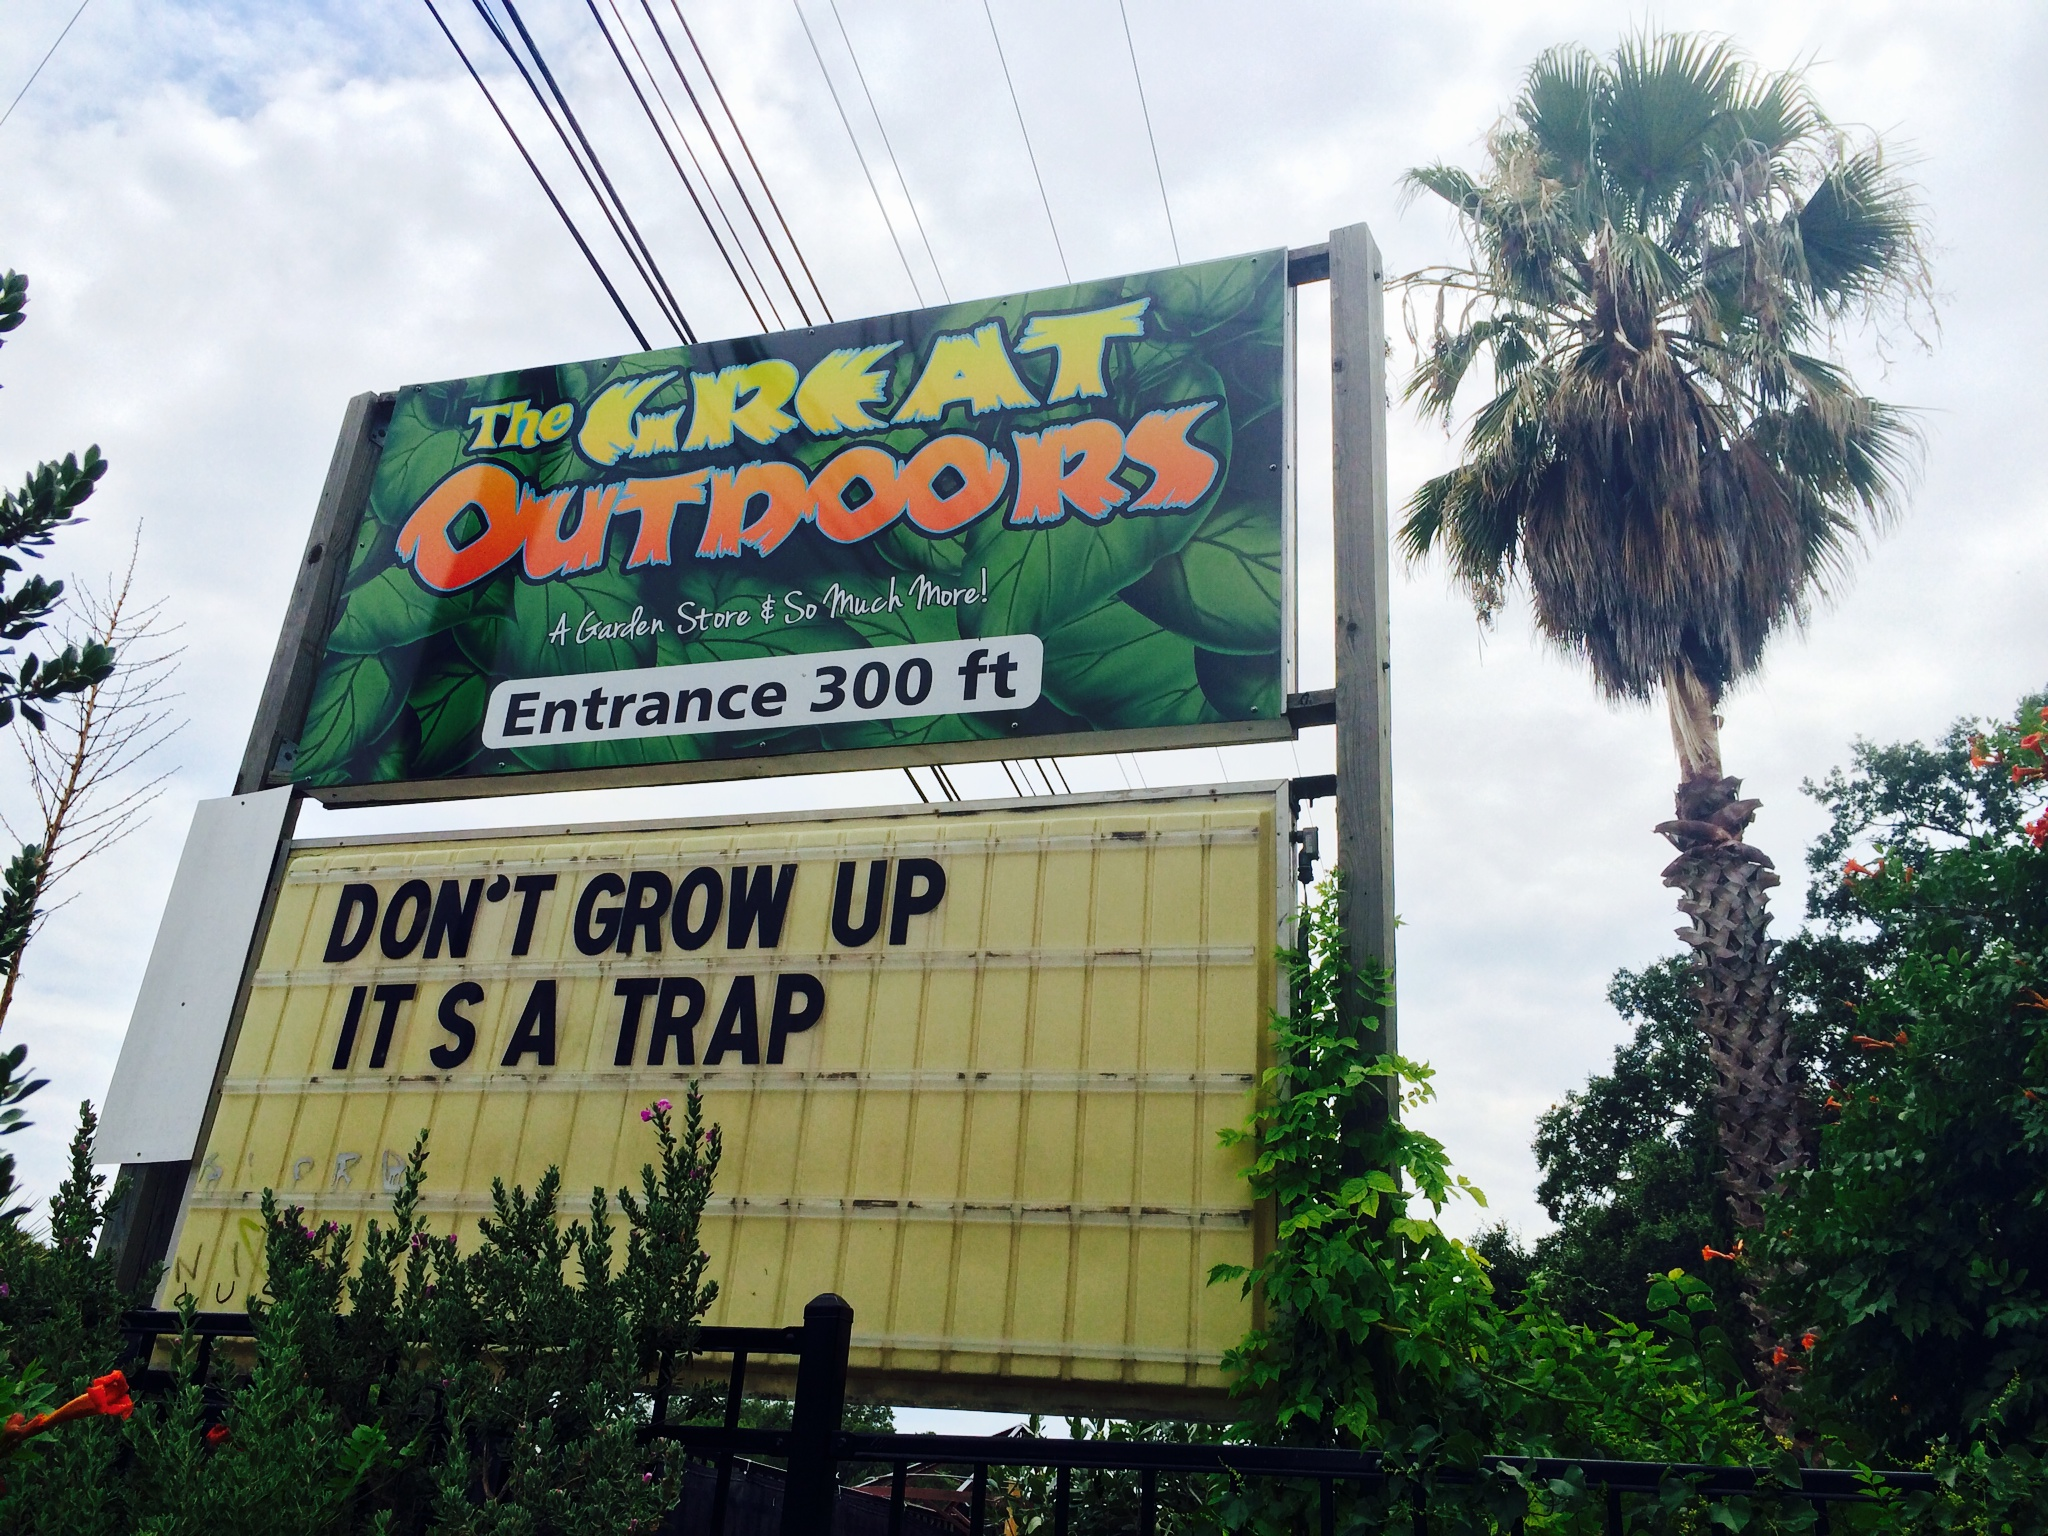 The great outdoors austin congress - Driving Down S Congress The Other Day I Laughed Out Loud In My Car All By Myself As I Passed By This The Great Outdoors Marquee Reminding Us That Being